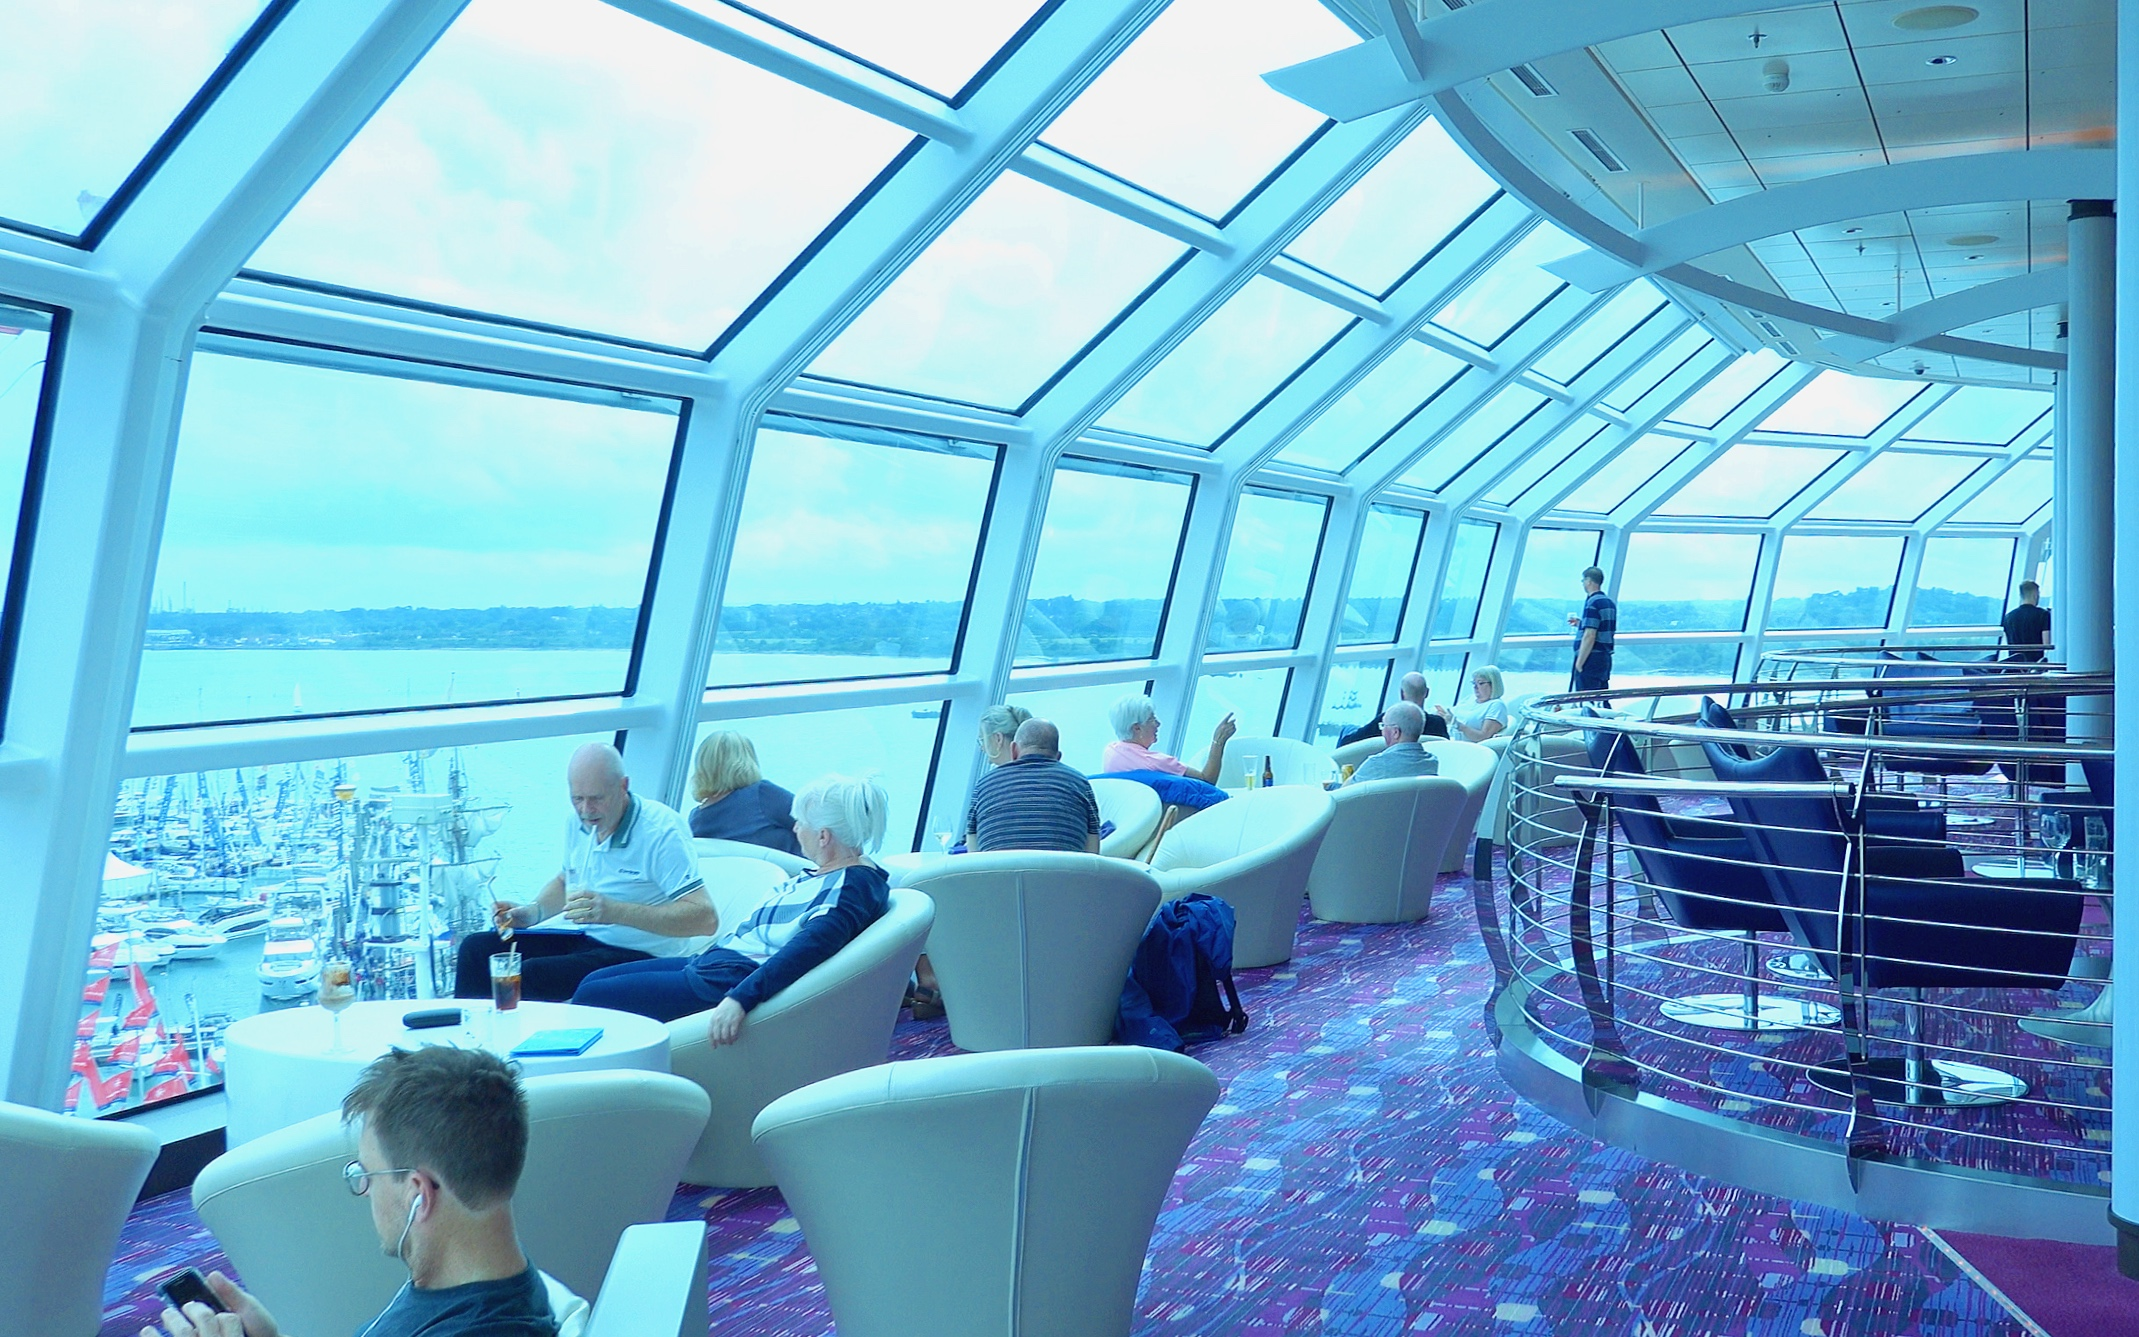 The panoramic Sky lounge windows at the front of the ship.